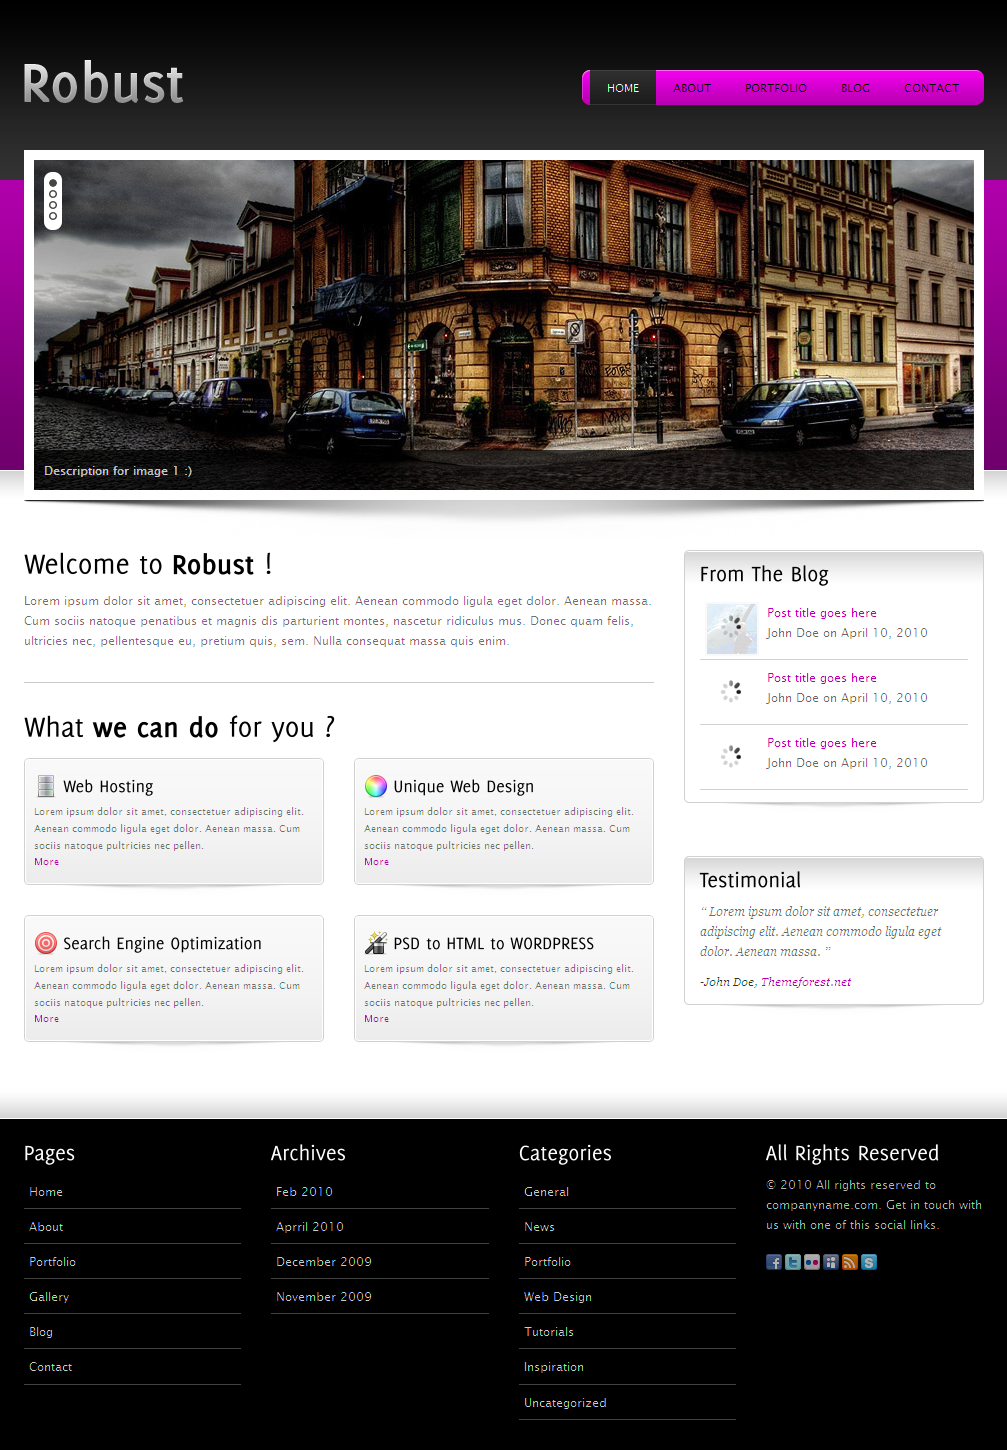 Robust-5 in 1 Business and Portfolio Template